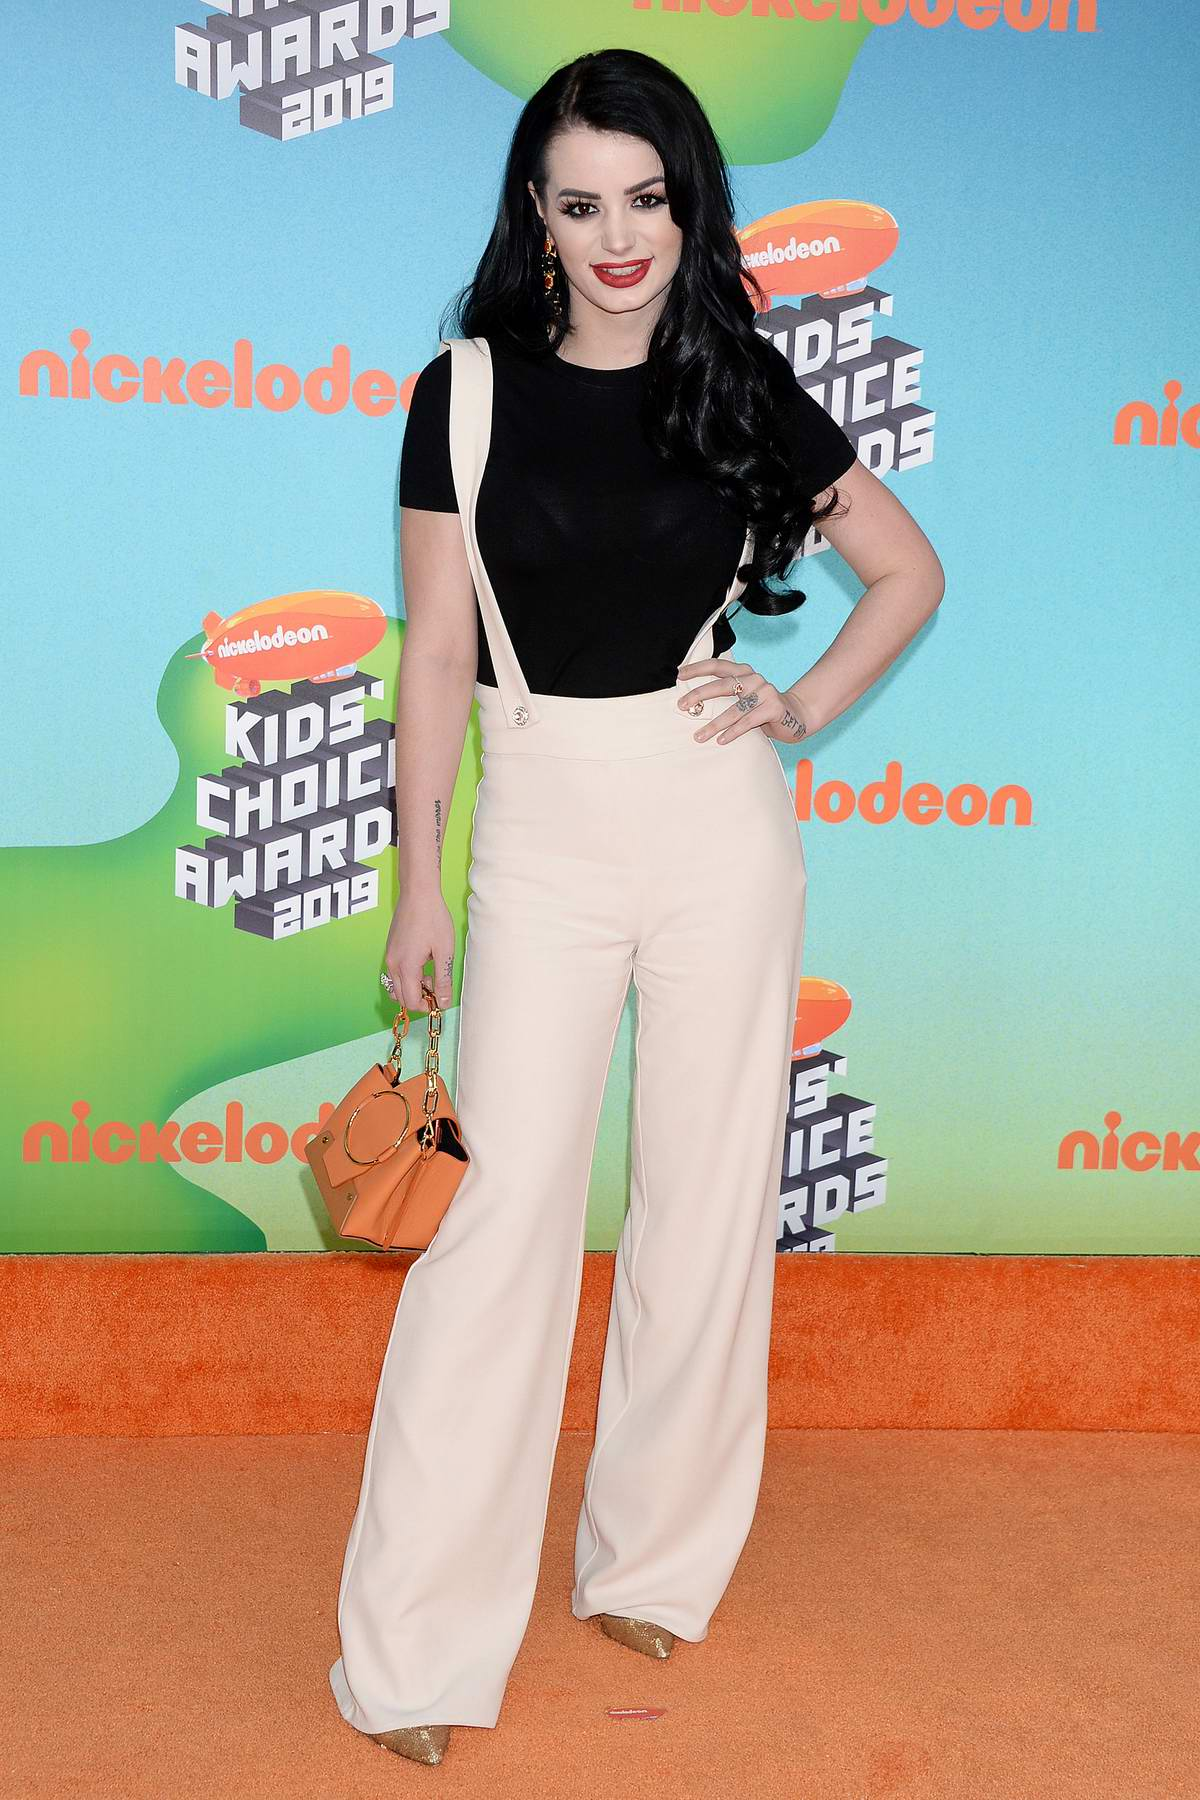 Saraya-Jade 'Paige' Bevis attends the Nickelodeon's 2019 Kids' Choice Awards at Galen Center in Los Angeles